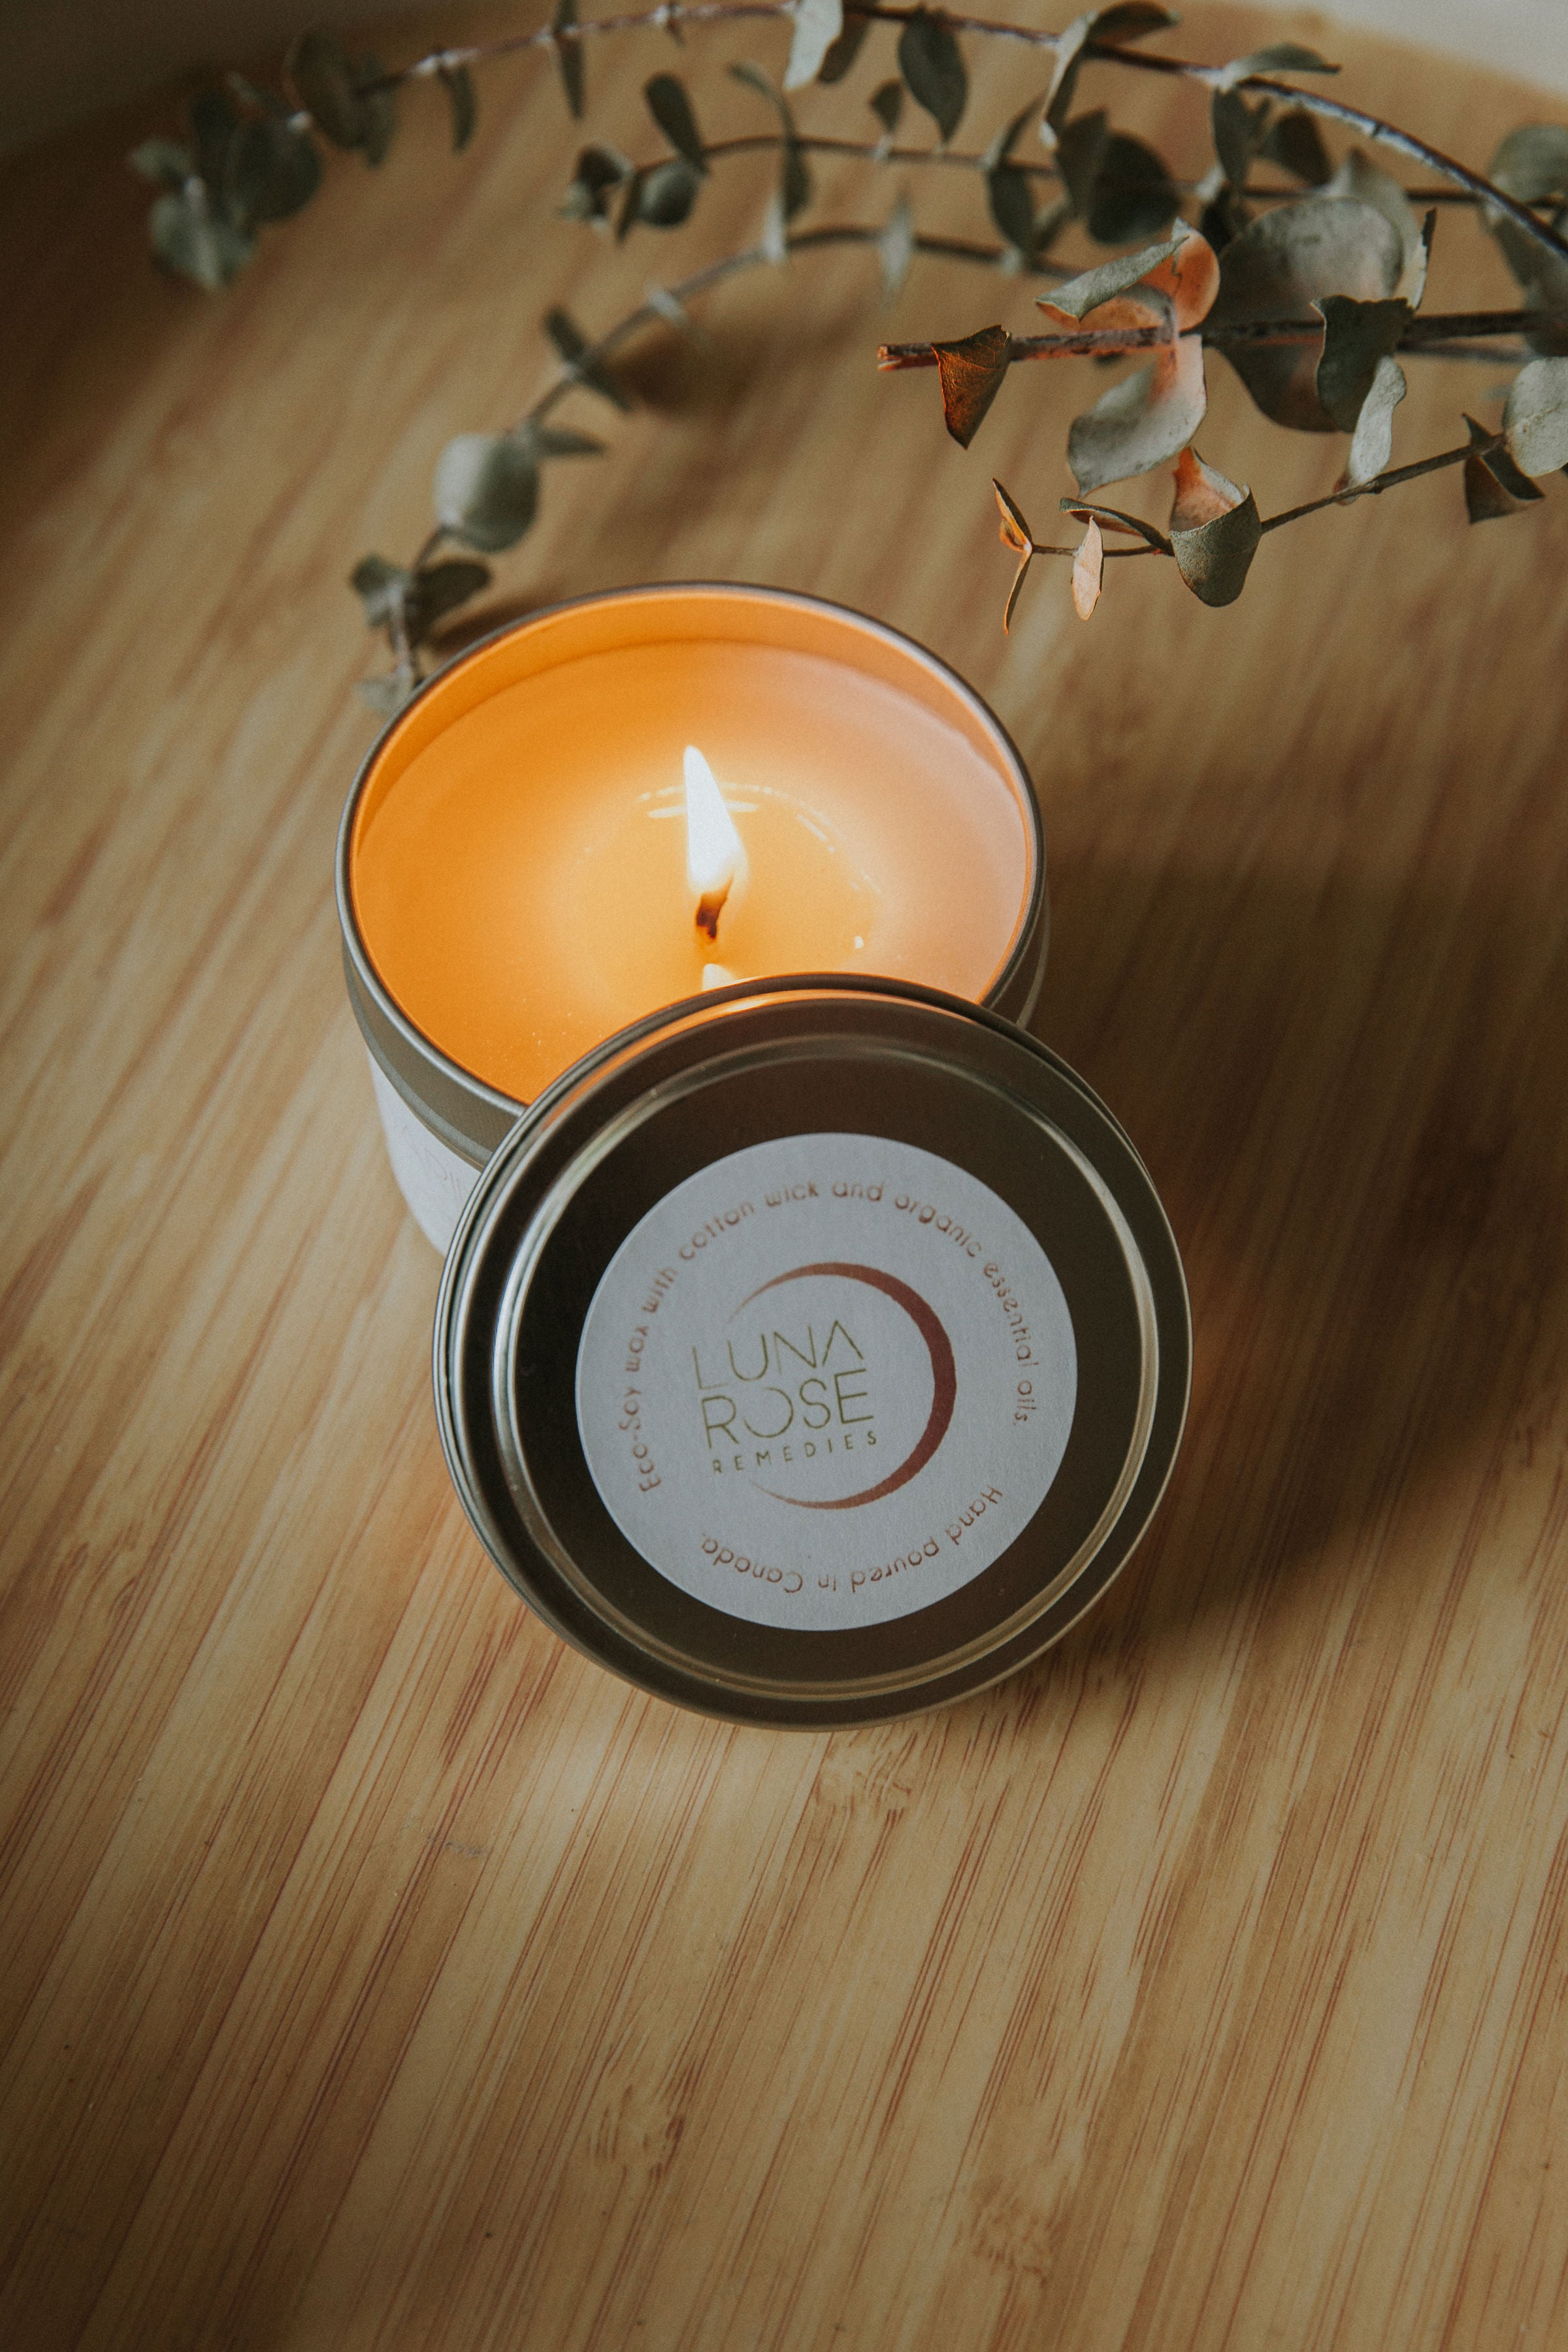 YIN Essential Oil Candle - Luna Rose Remedies